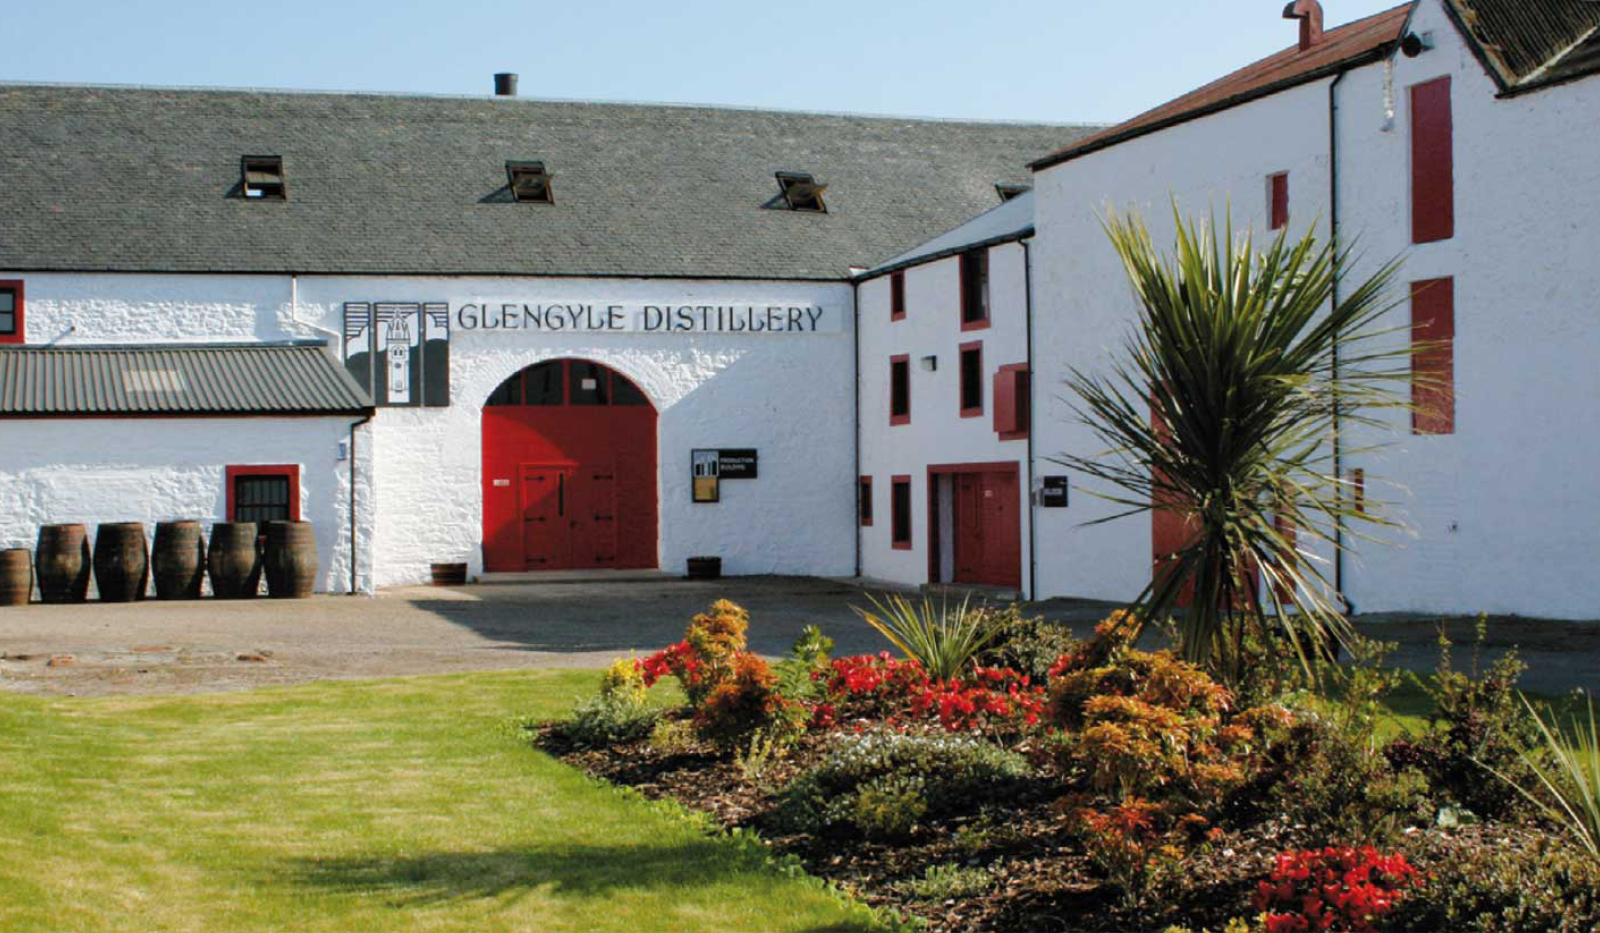 Kilkerran – Single Malt aus der Glengyle Distillery